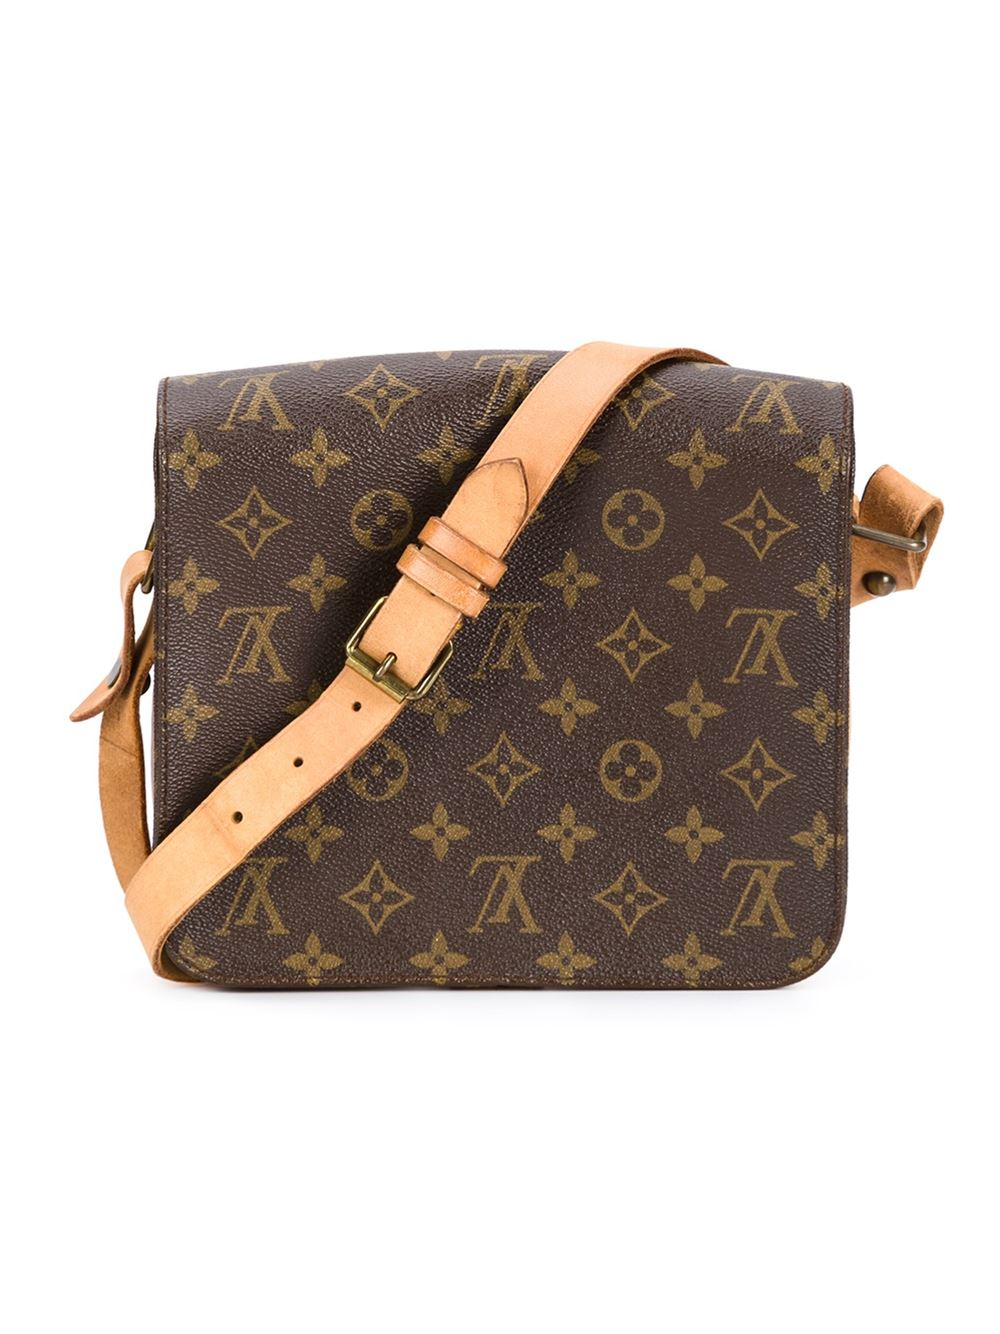 a4d29fb700fd Lyst - Louis Vuitton Signature Crossbody Bag in Brown